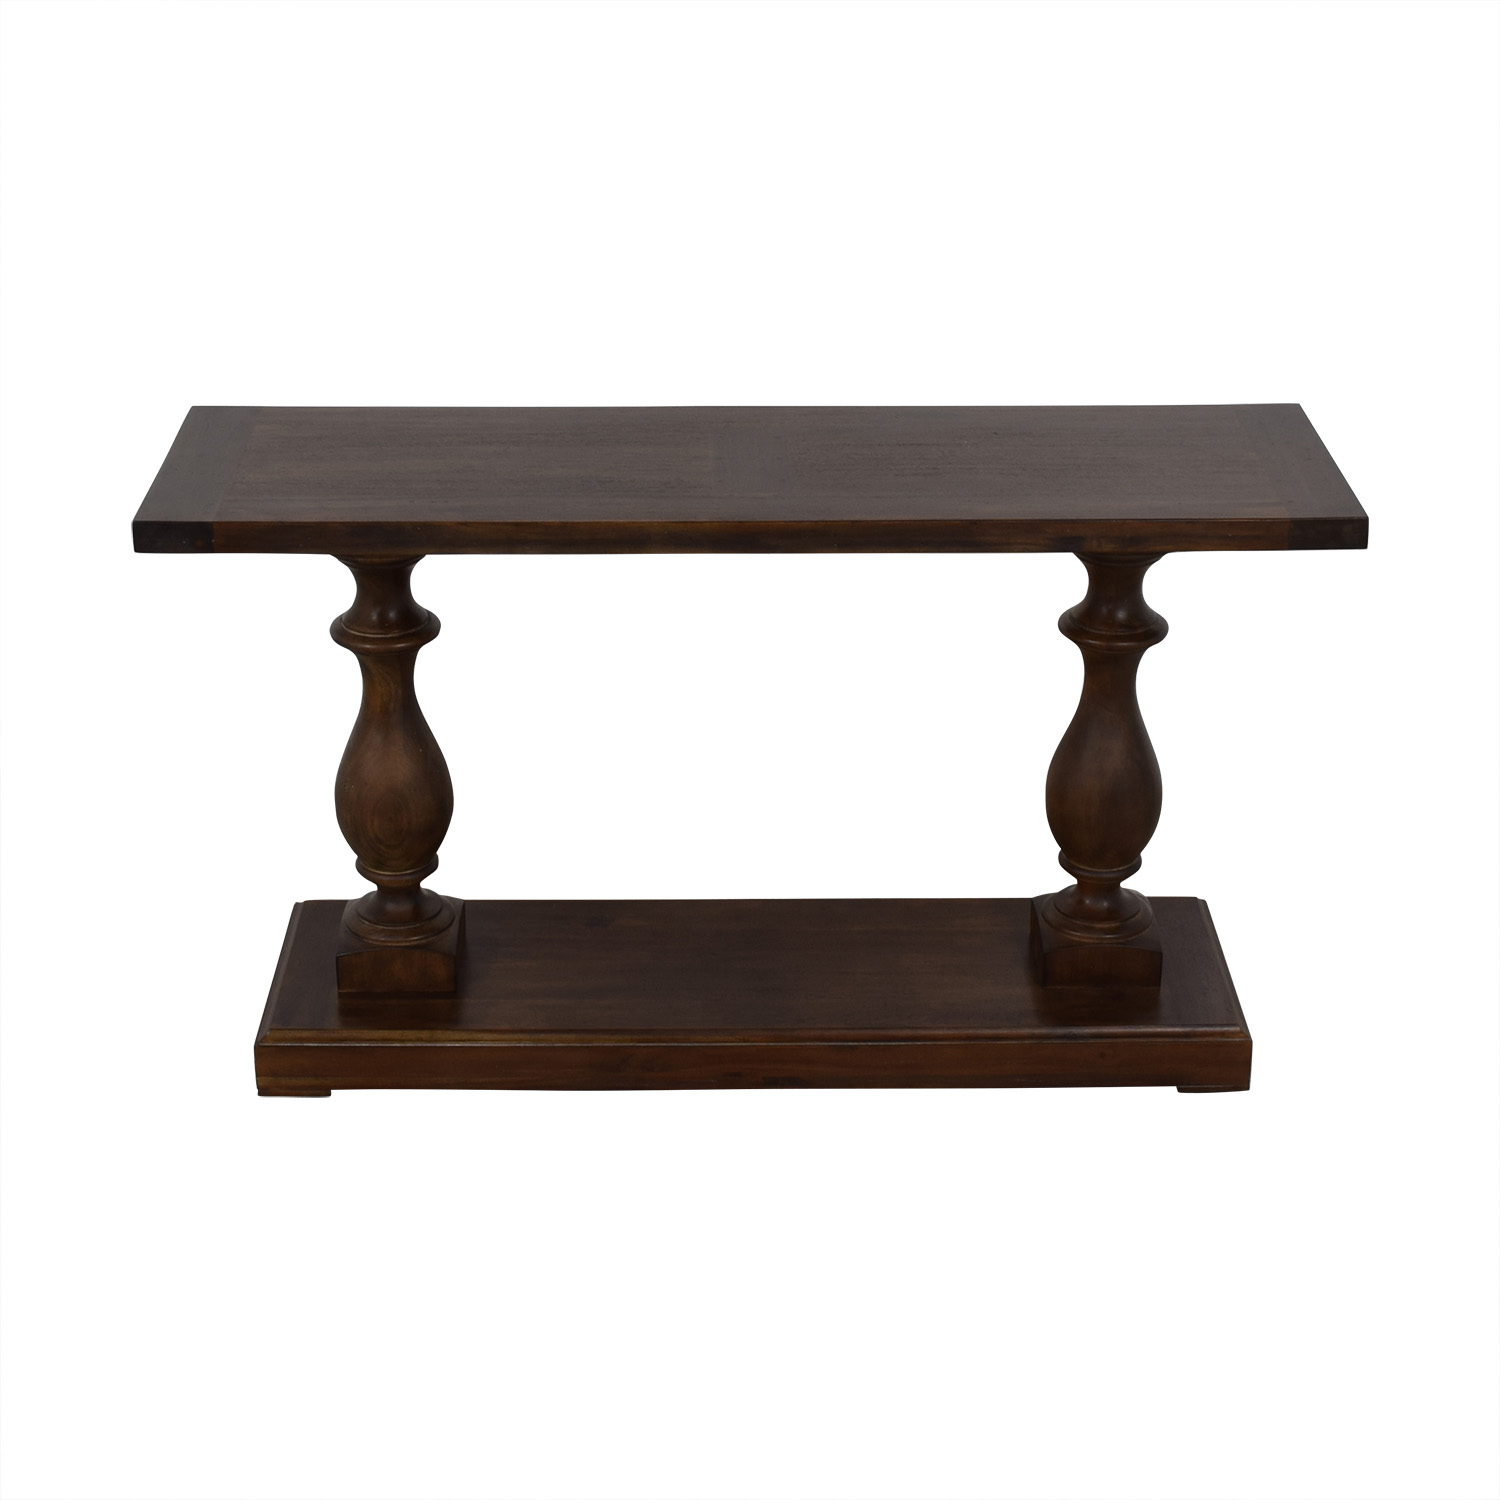 Restoration Hardware 17th C. Monastery Console Table sale